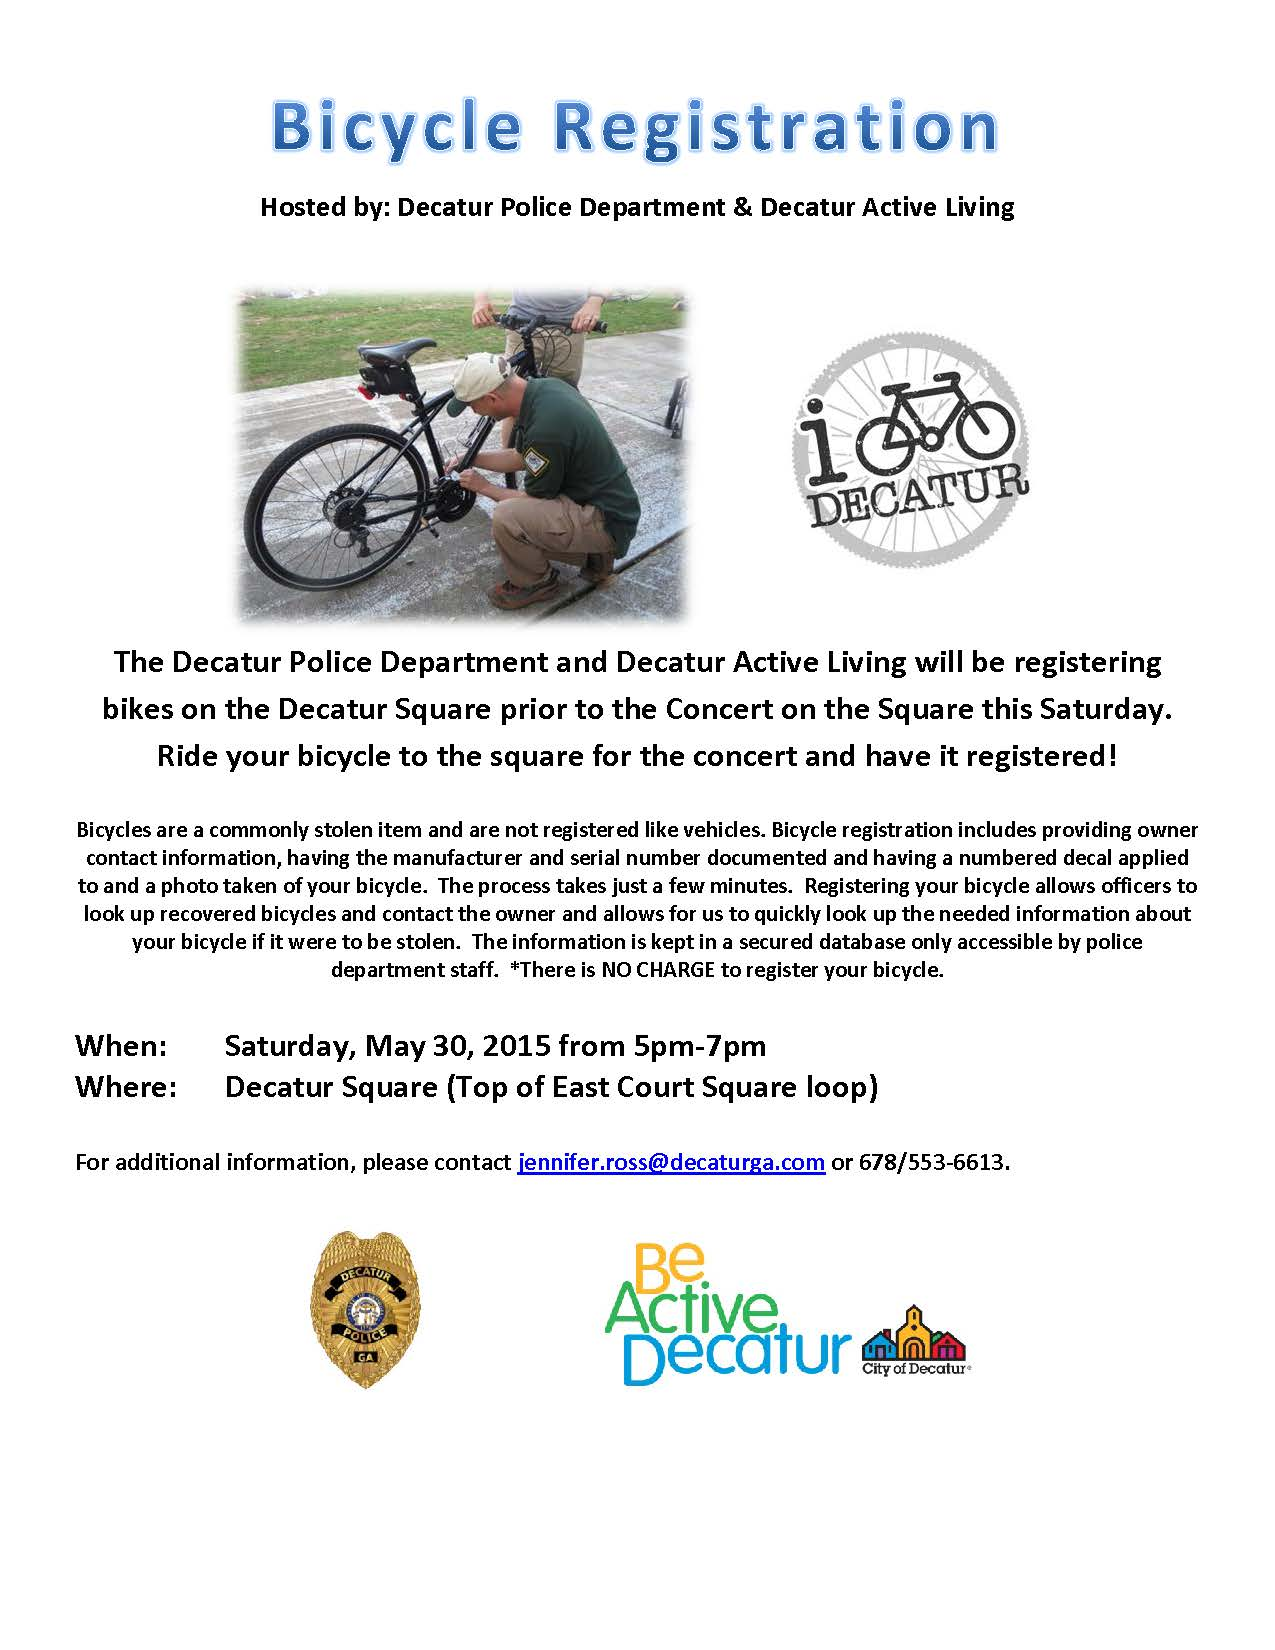 Bicycle Registration Be Active Decatur